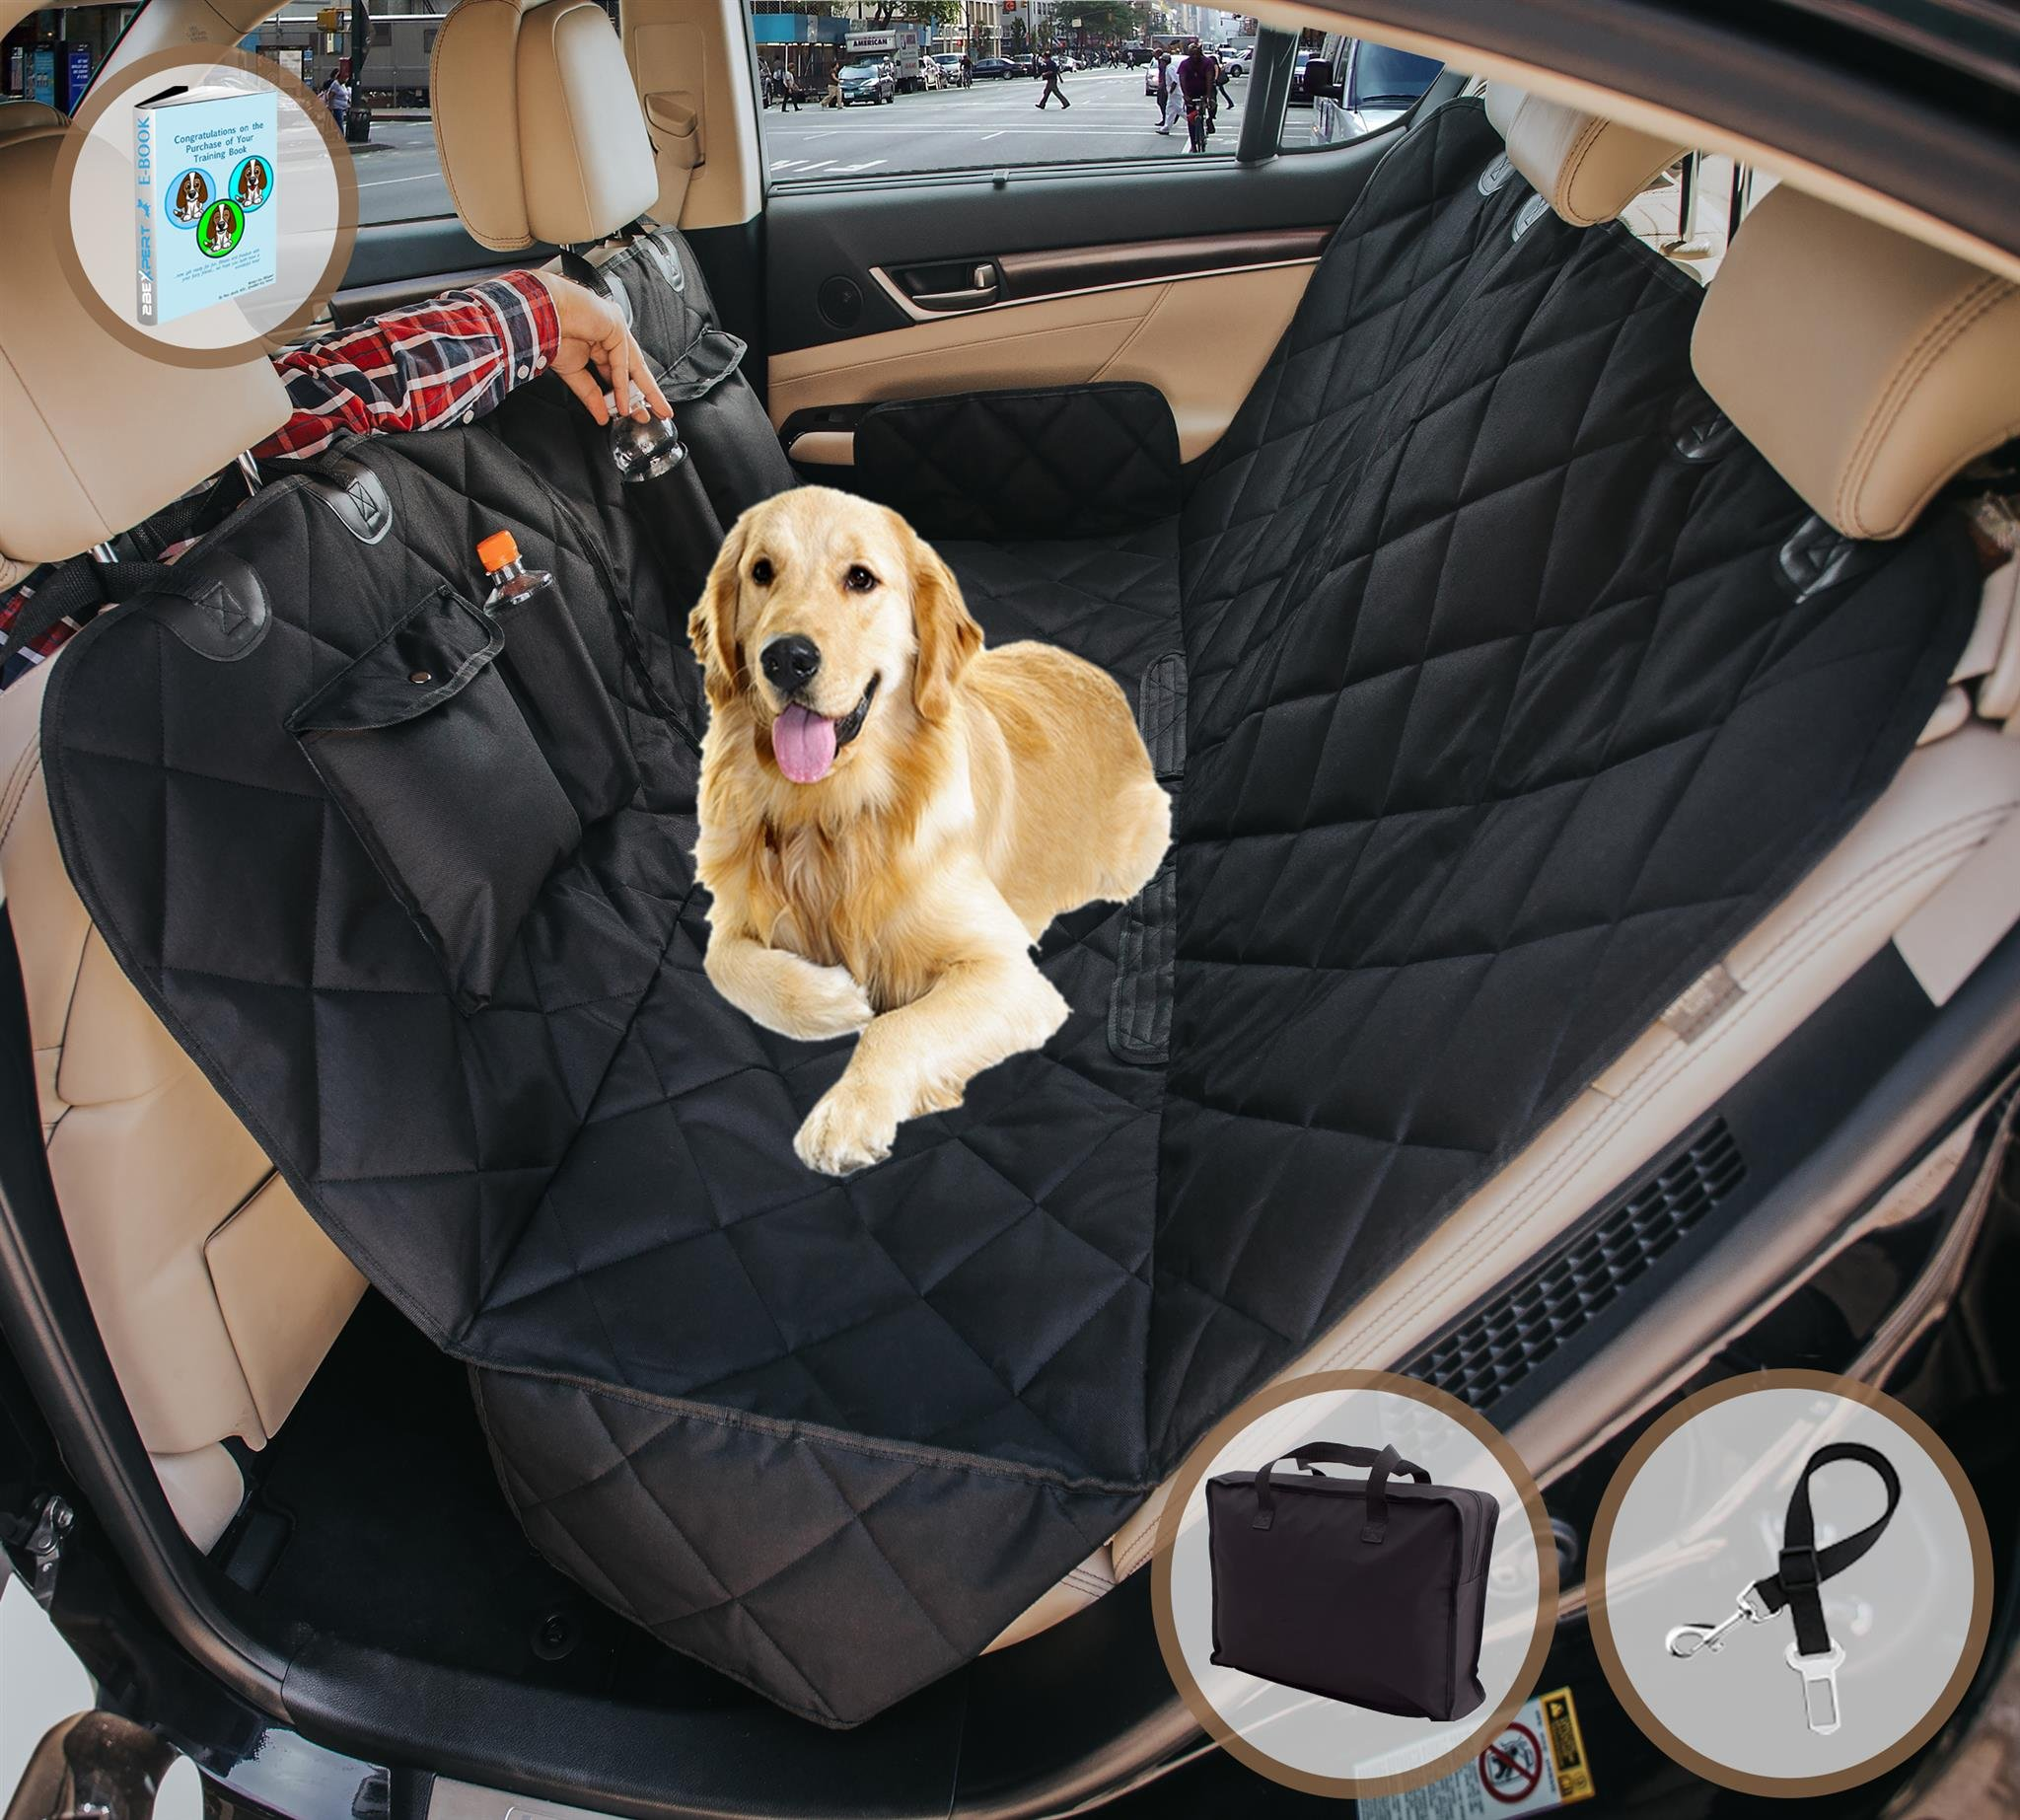 seat for cars x amazon dog black suvs hammock large and com cover supplies pet car convertible barksbar trucks waterproof original dp